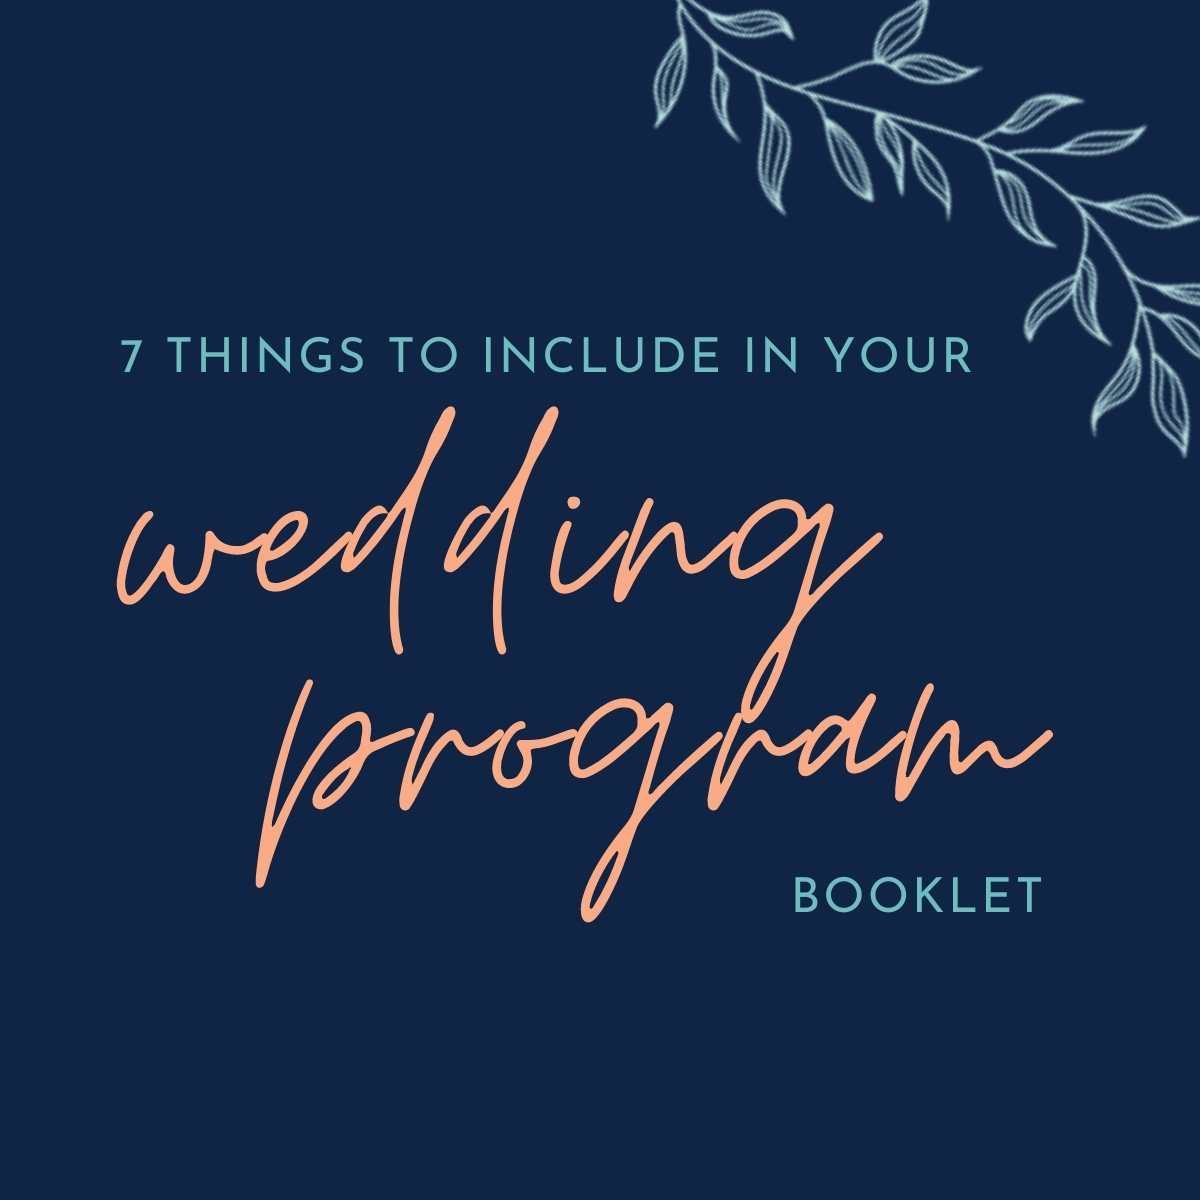 graphic 7 things to include in a wedding program booklet